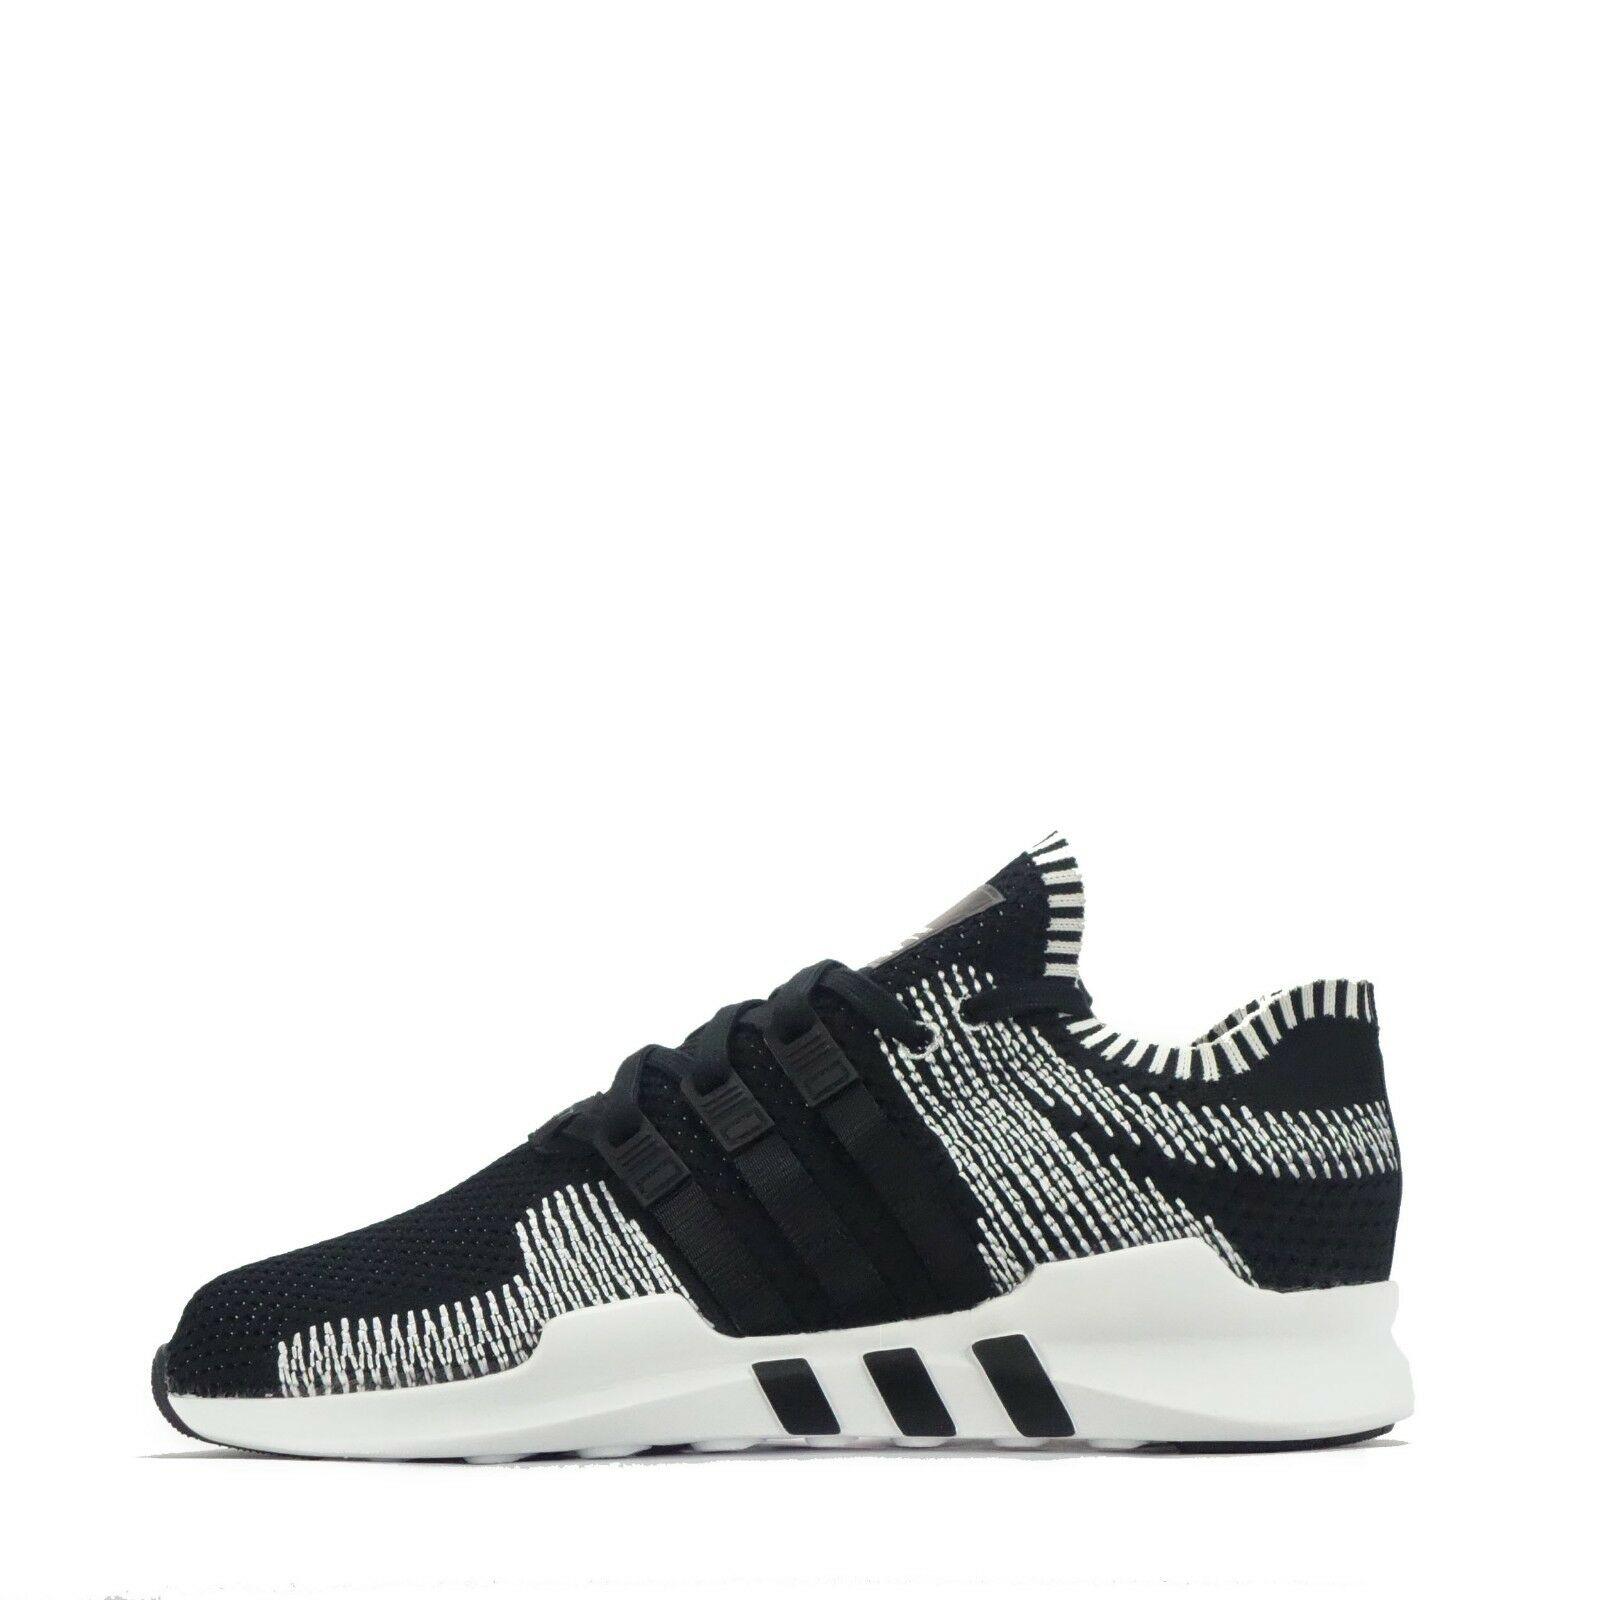 adidas Originals EQT Support ADV Primeknit Men's Trainers BlackWhite